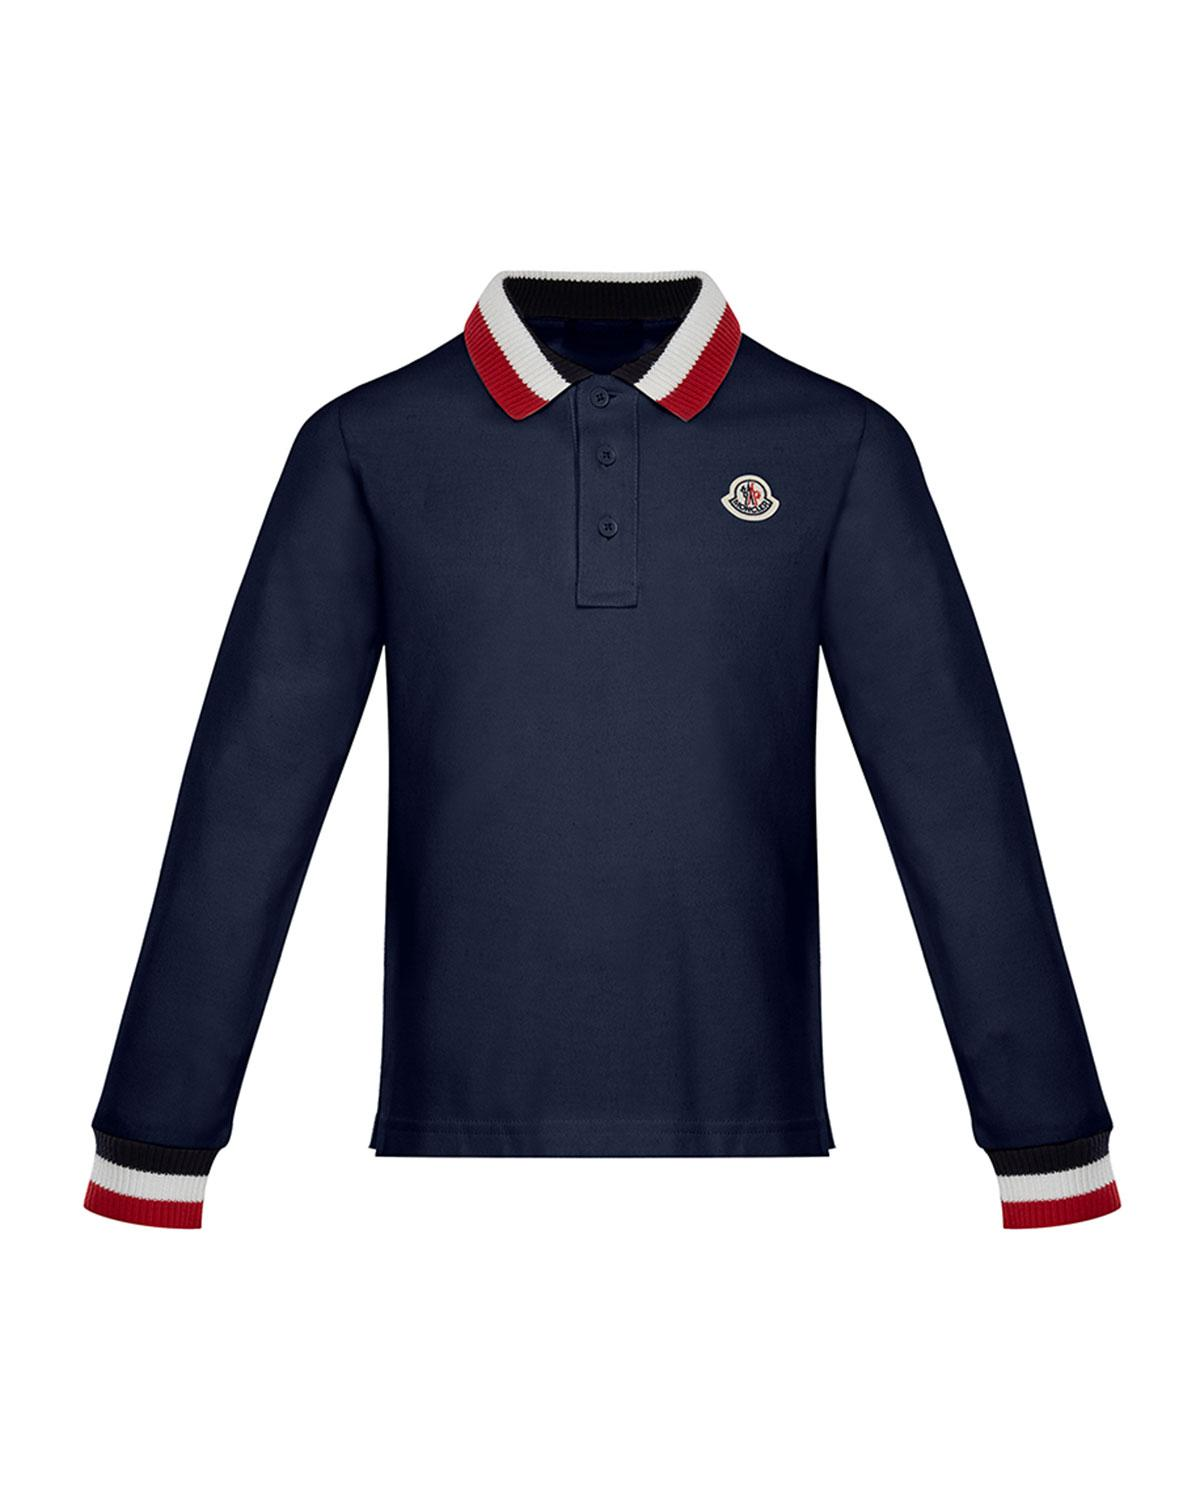 9795ffa0abba Lyst - Moncler Maglia Long-sleeve Polo Shirt in White for Men